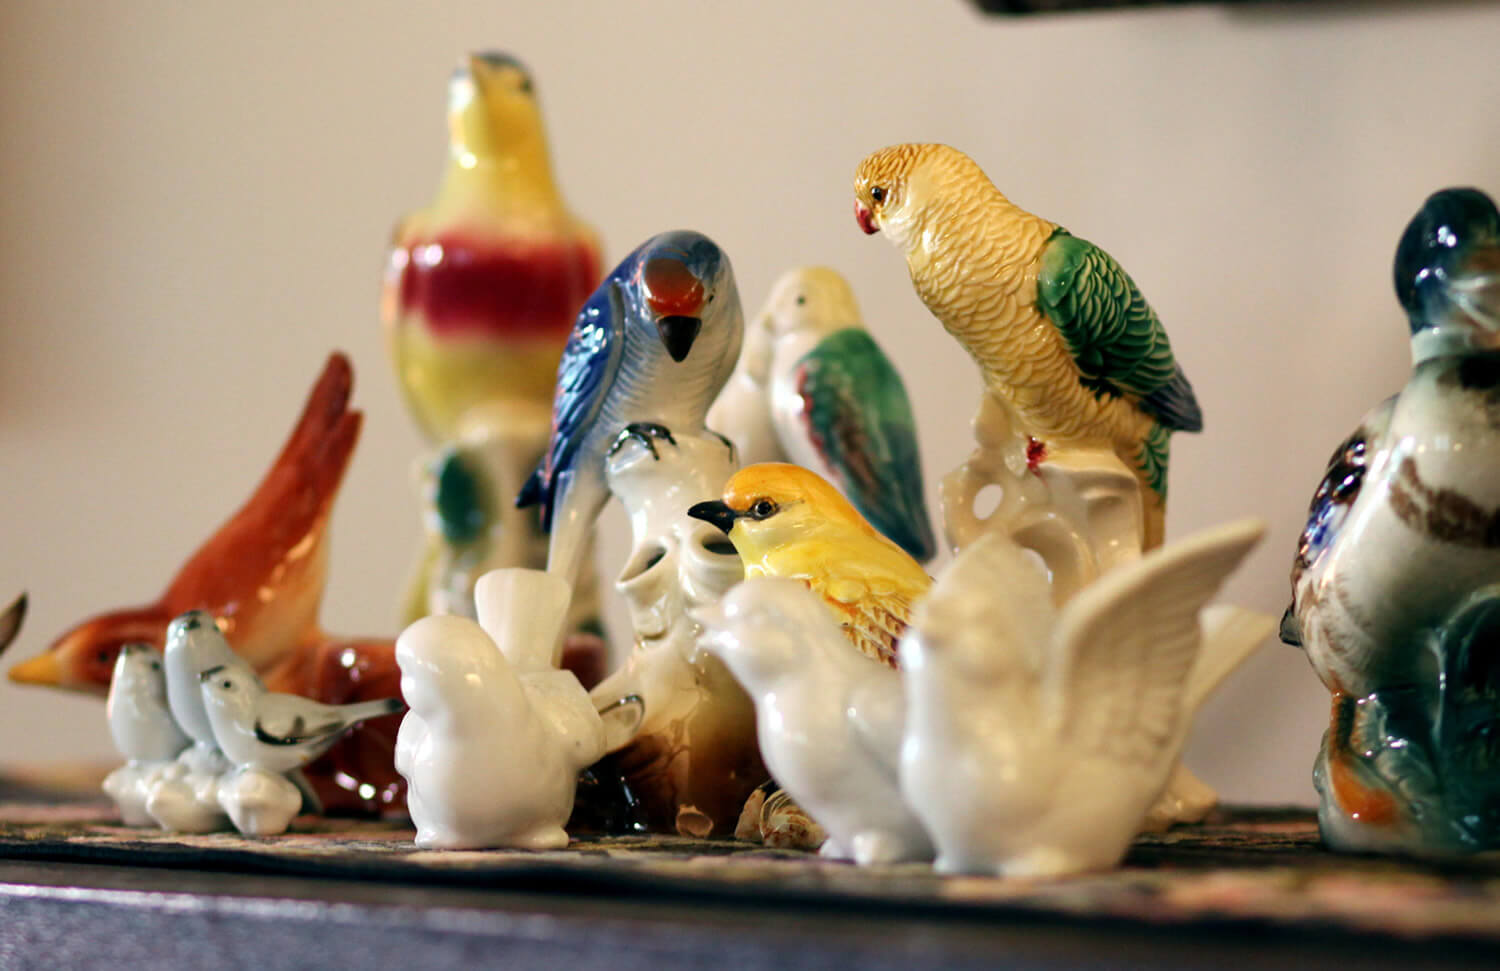 collection of ceramic birds in blue, green, red and yellow